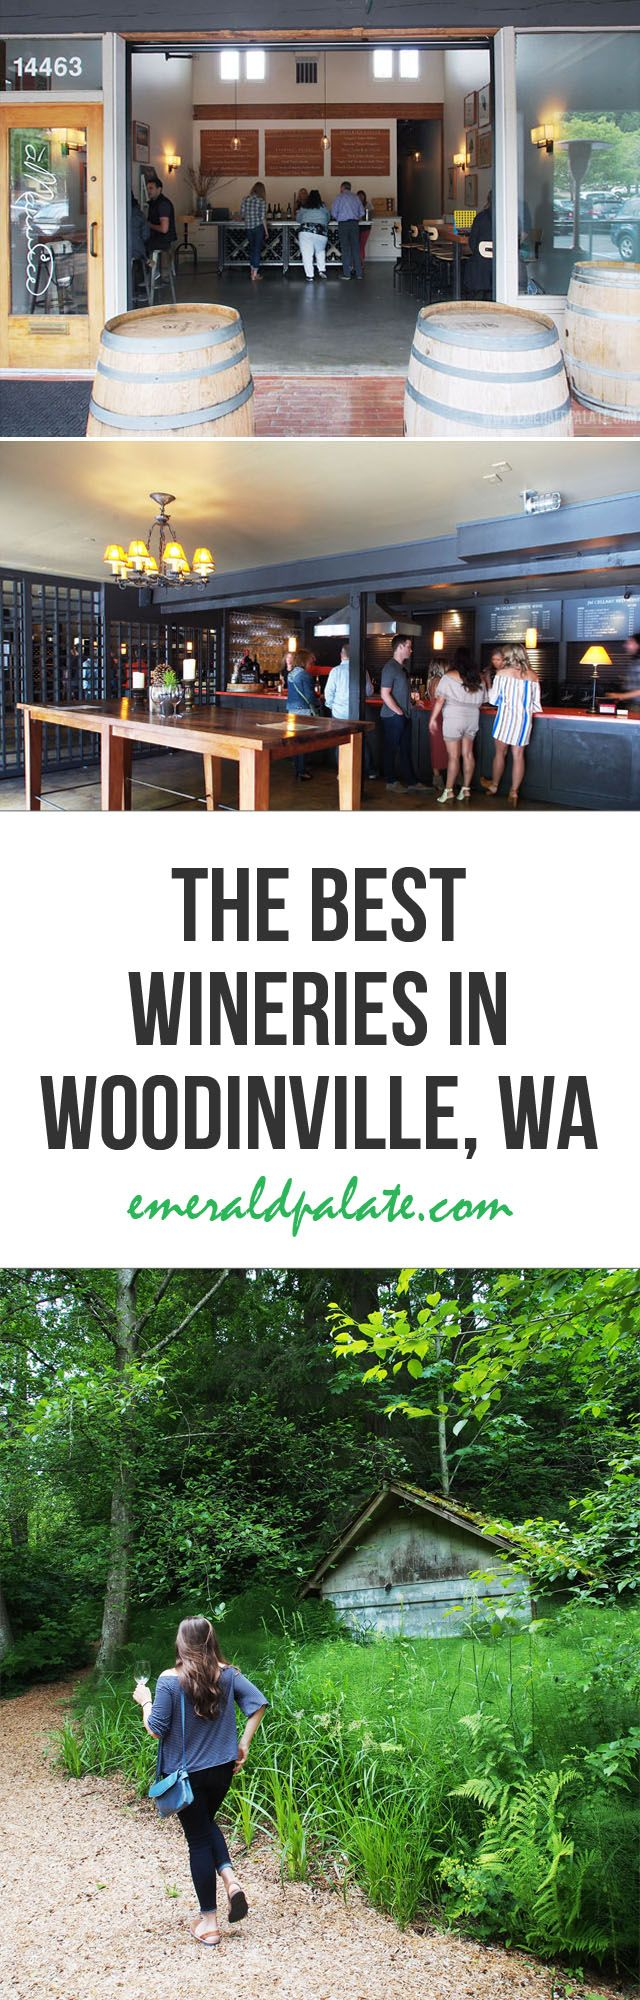 The Best Wineries in Woodinville 48 best